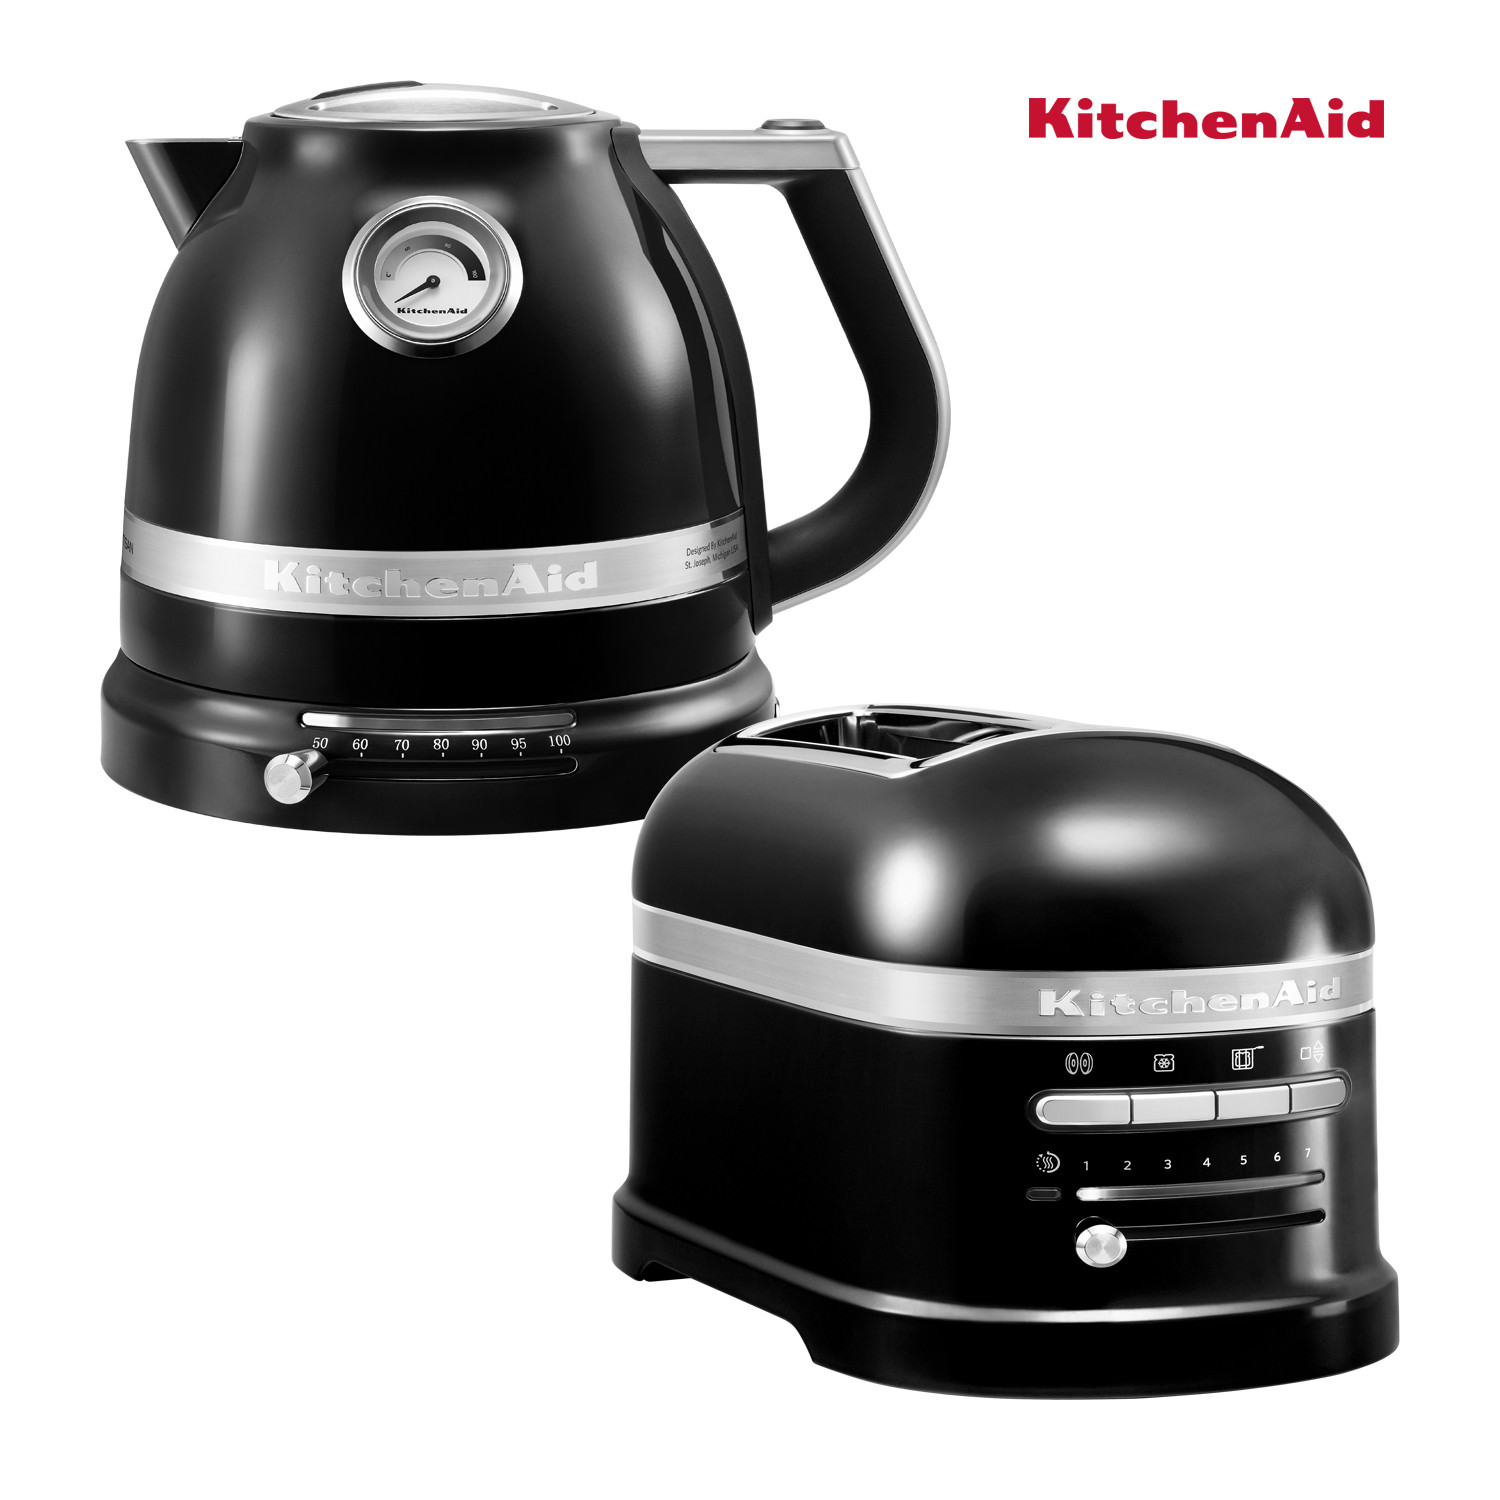 KitchenAid Artisan Wasserkocher + Toaster